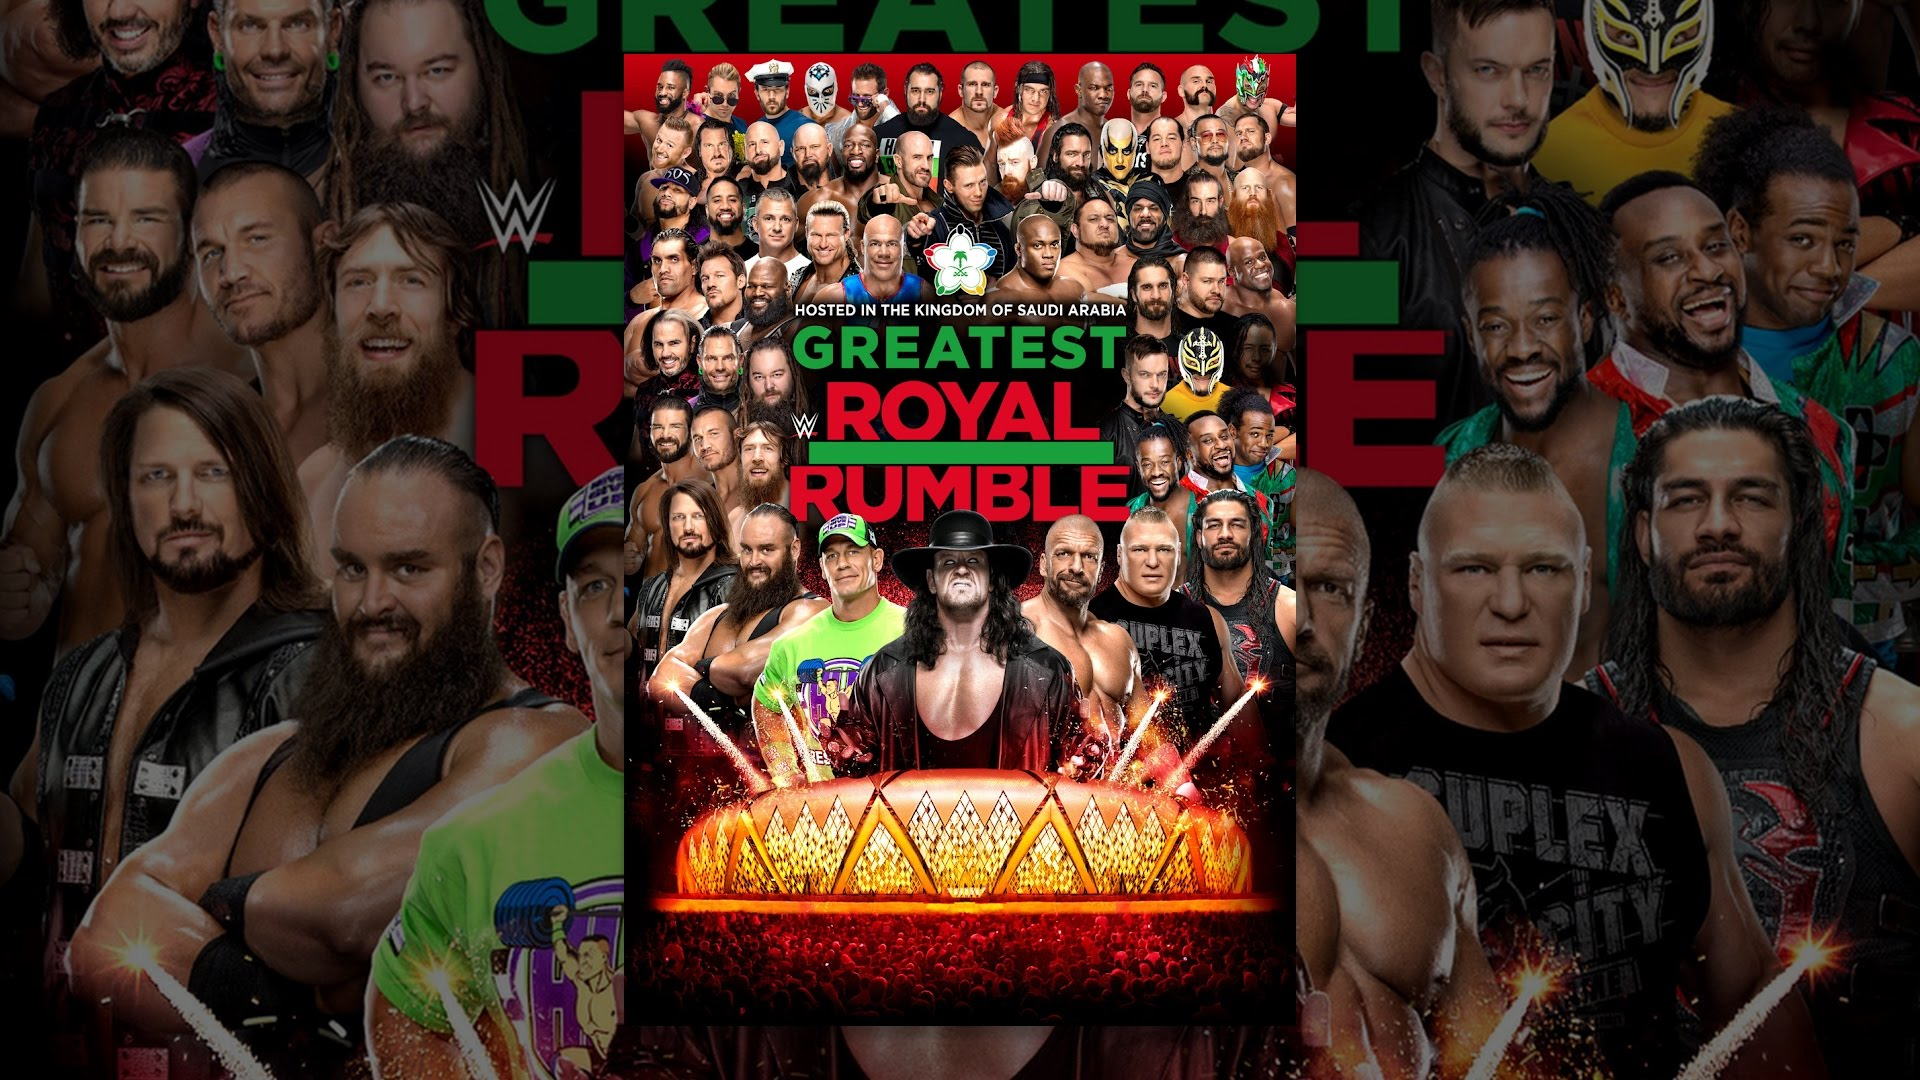 2019 WWE Stomping Grounds results, recap, grades: Title change, surprise referee lead uneven show